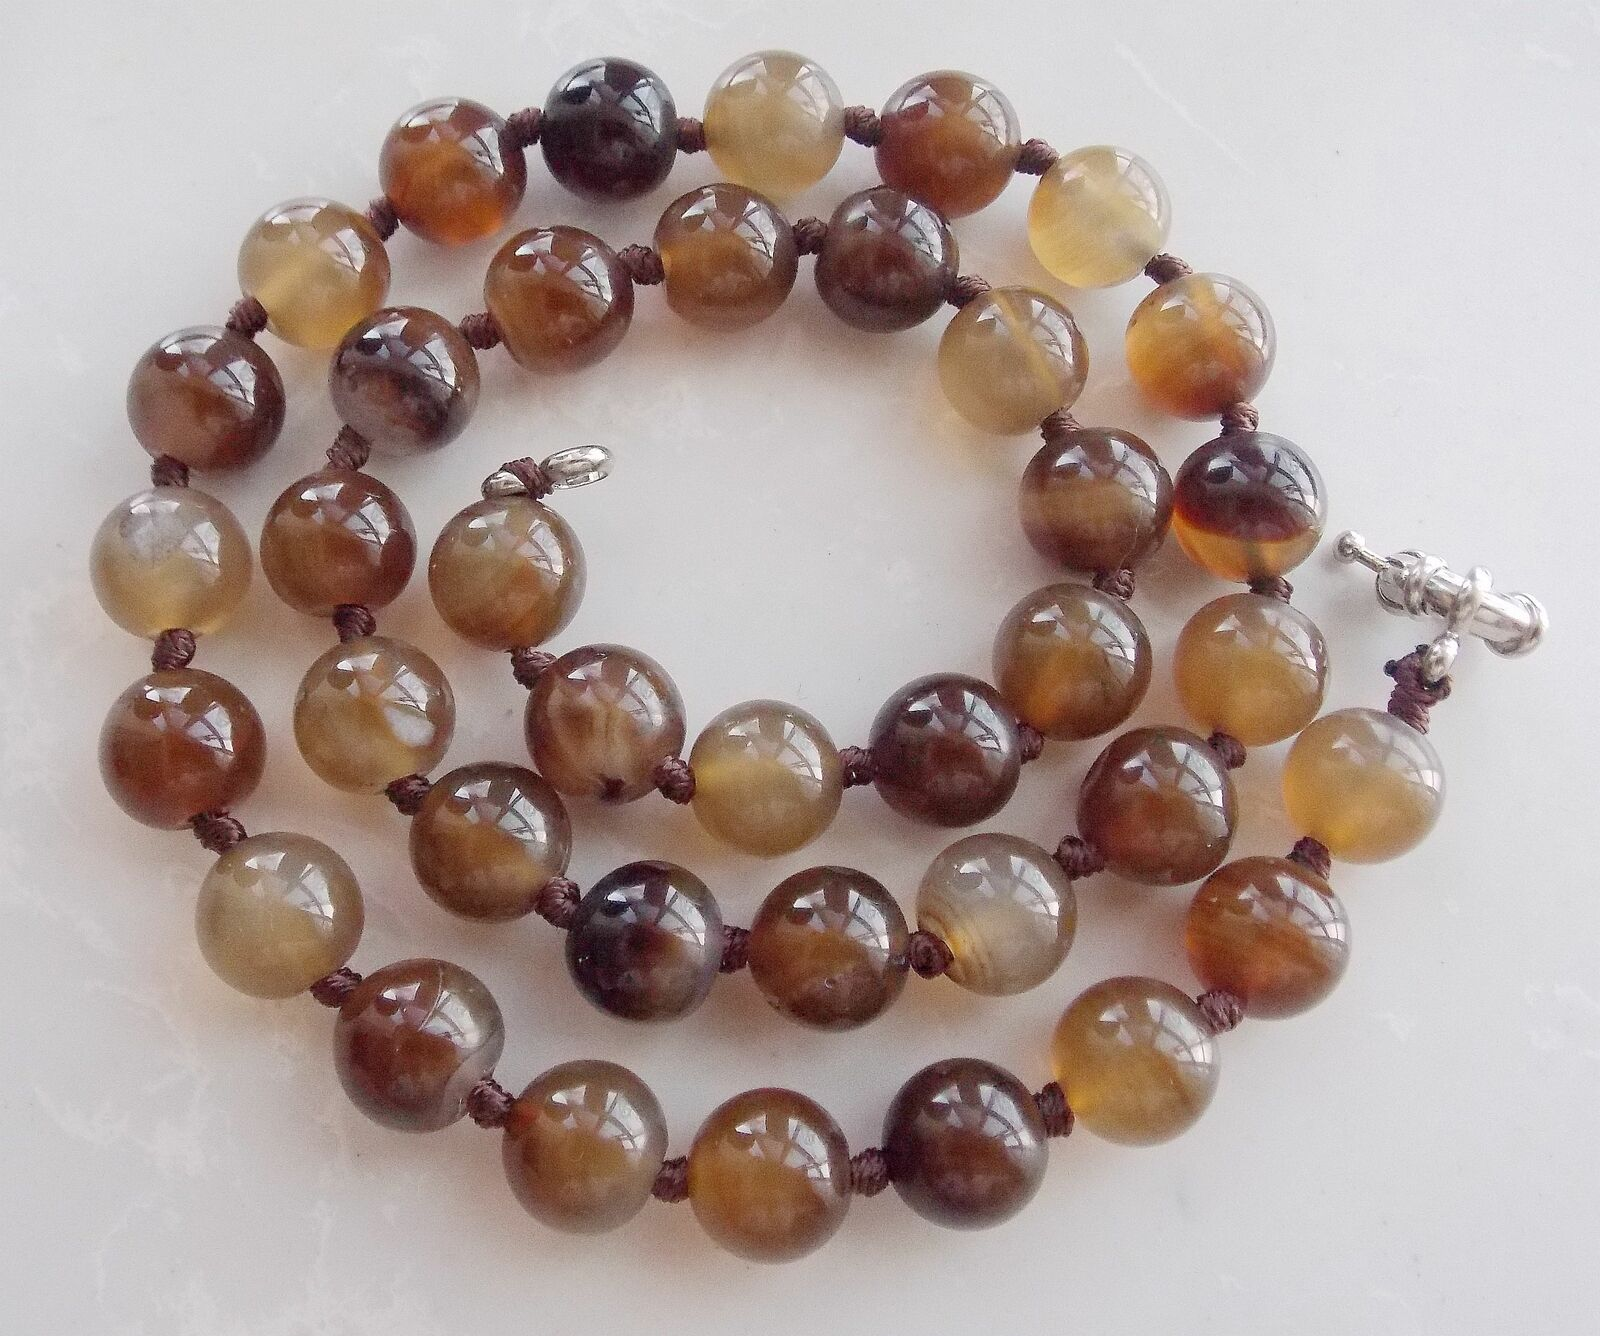 Fashion 10mm Round Natural Brown Agate Gemstone Beads Necklace 18.5'' AAA+